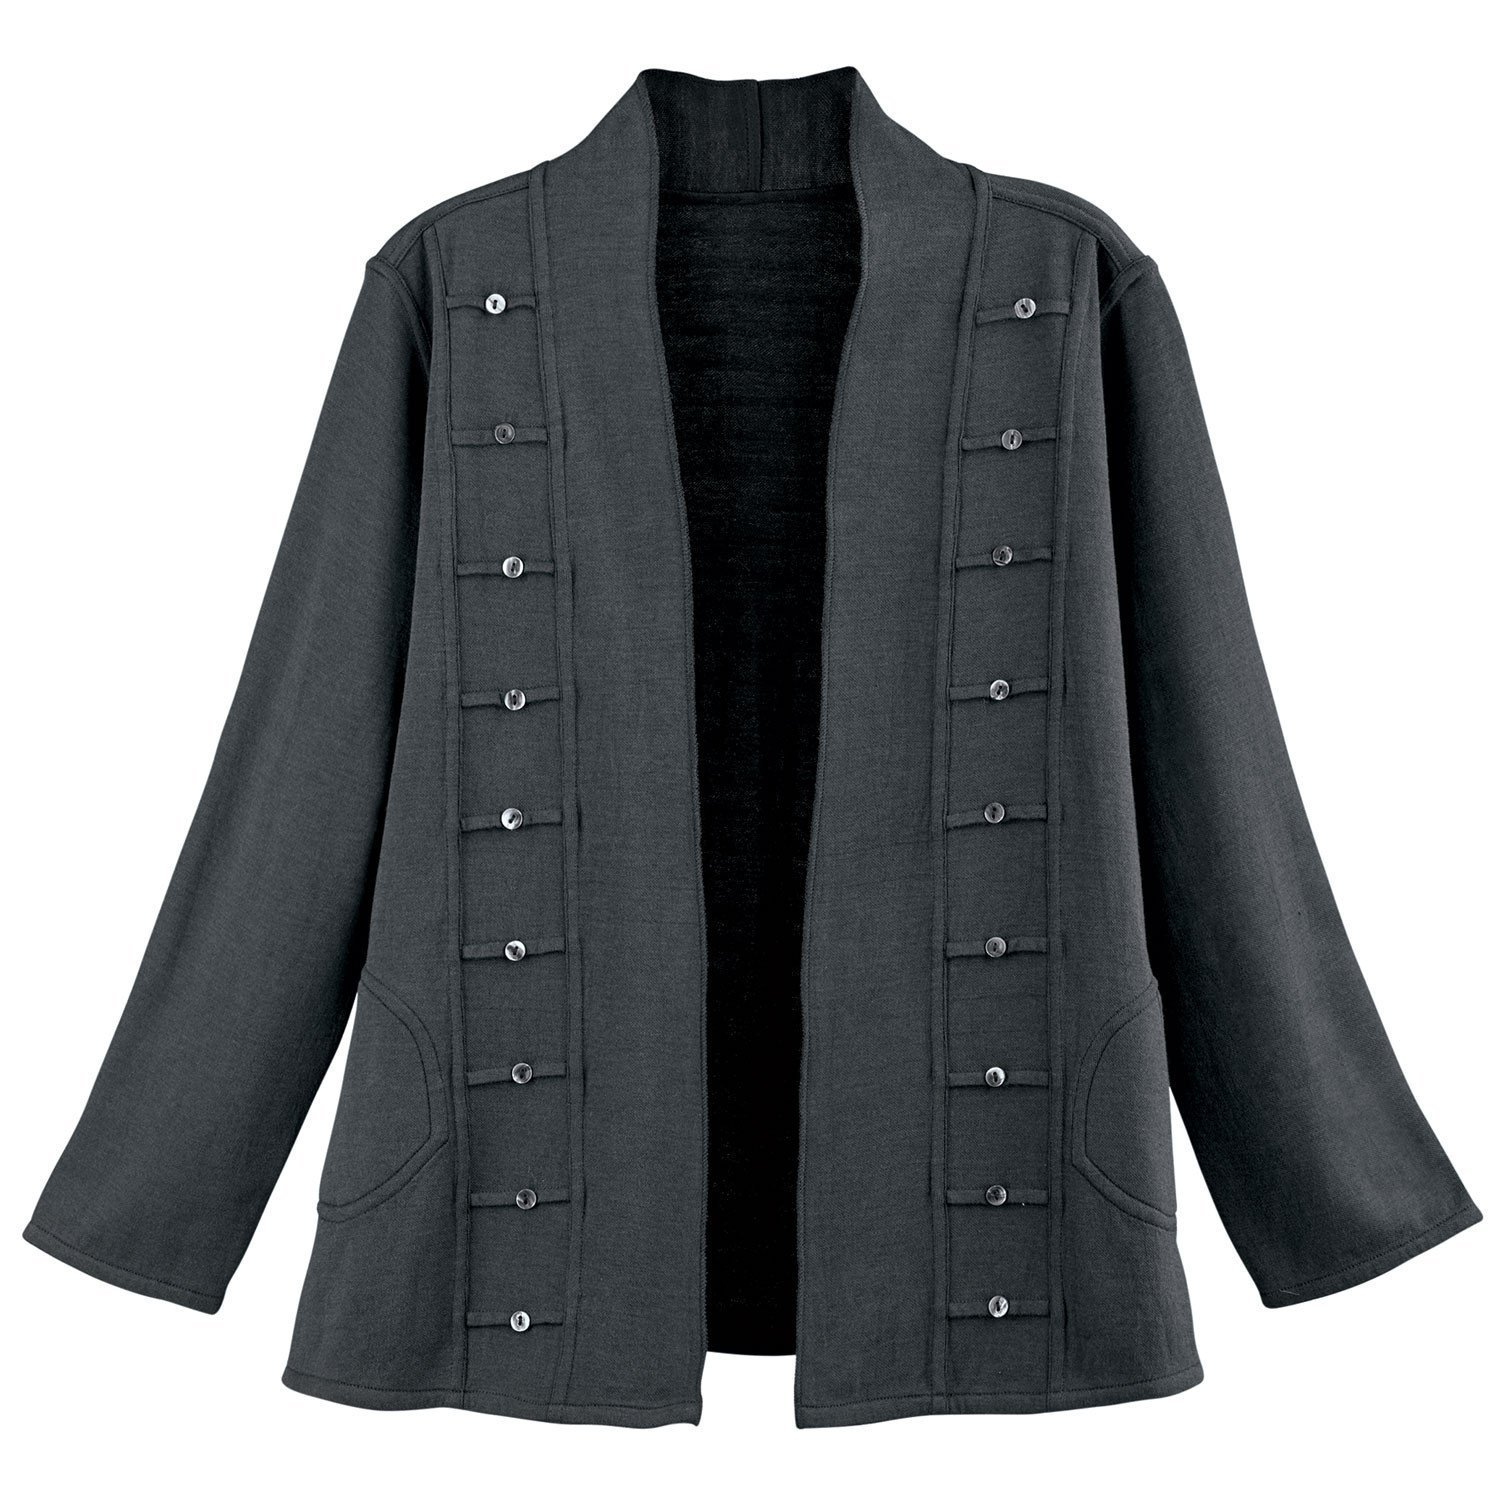 Parsley & Sage Women's Reversible Open-Front Jacket - Military-Style Coat - Charcoal - Large